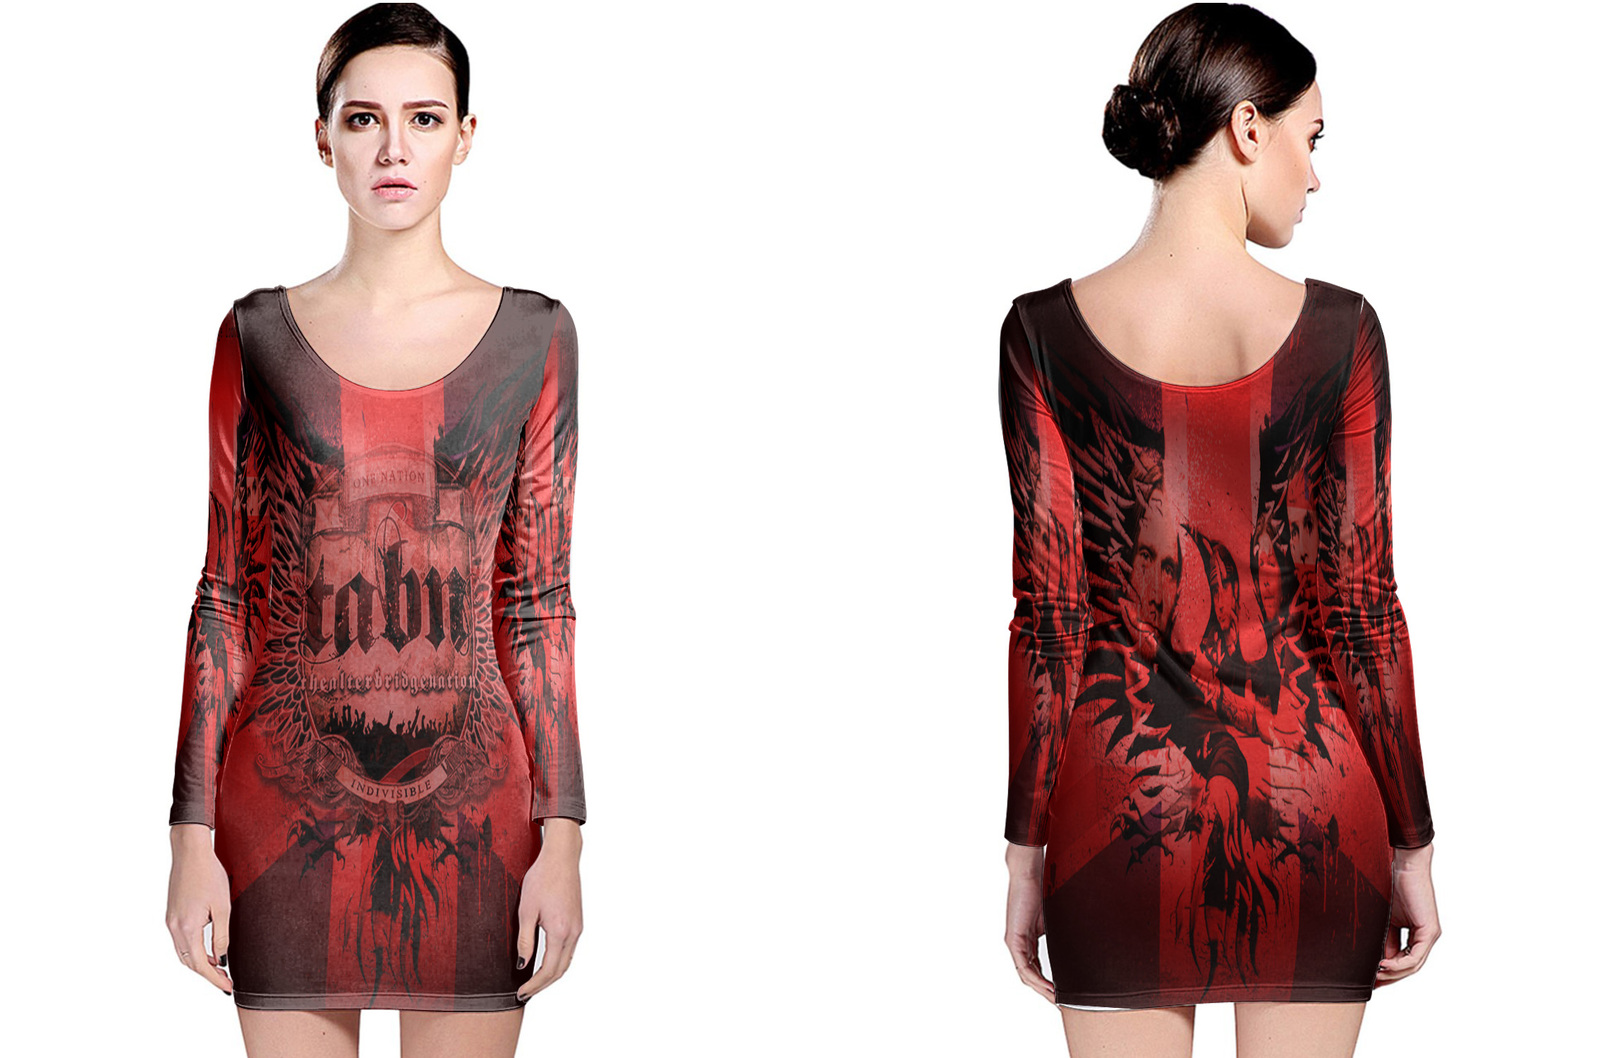 Primary image for Alter Bridge London Bodycon Long Sleeve Dress